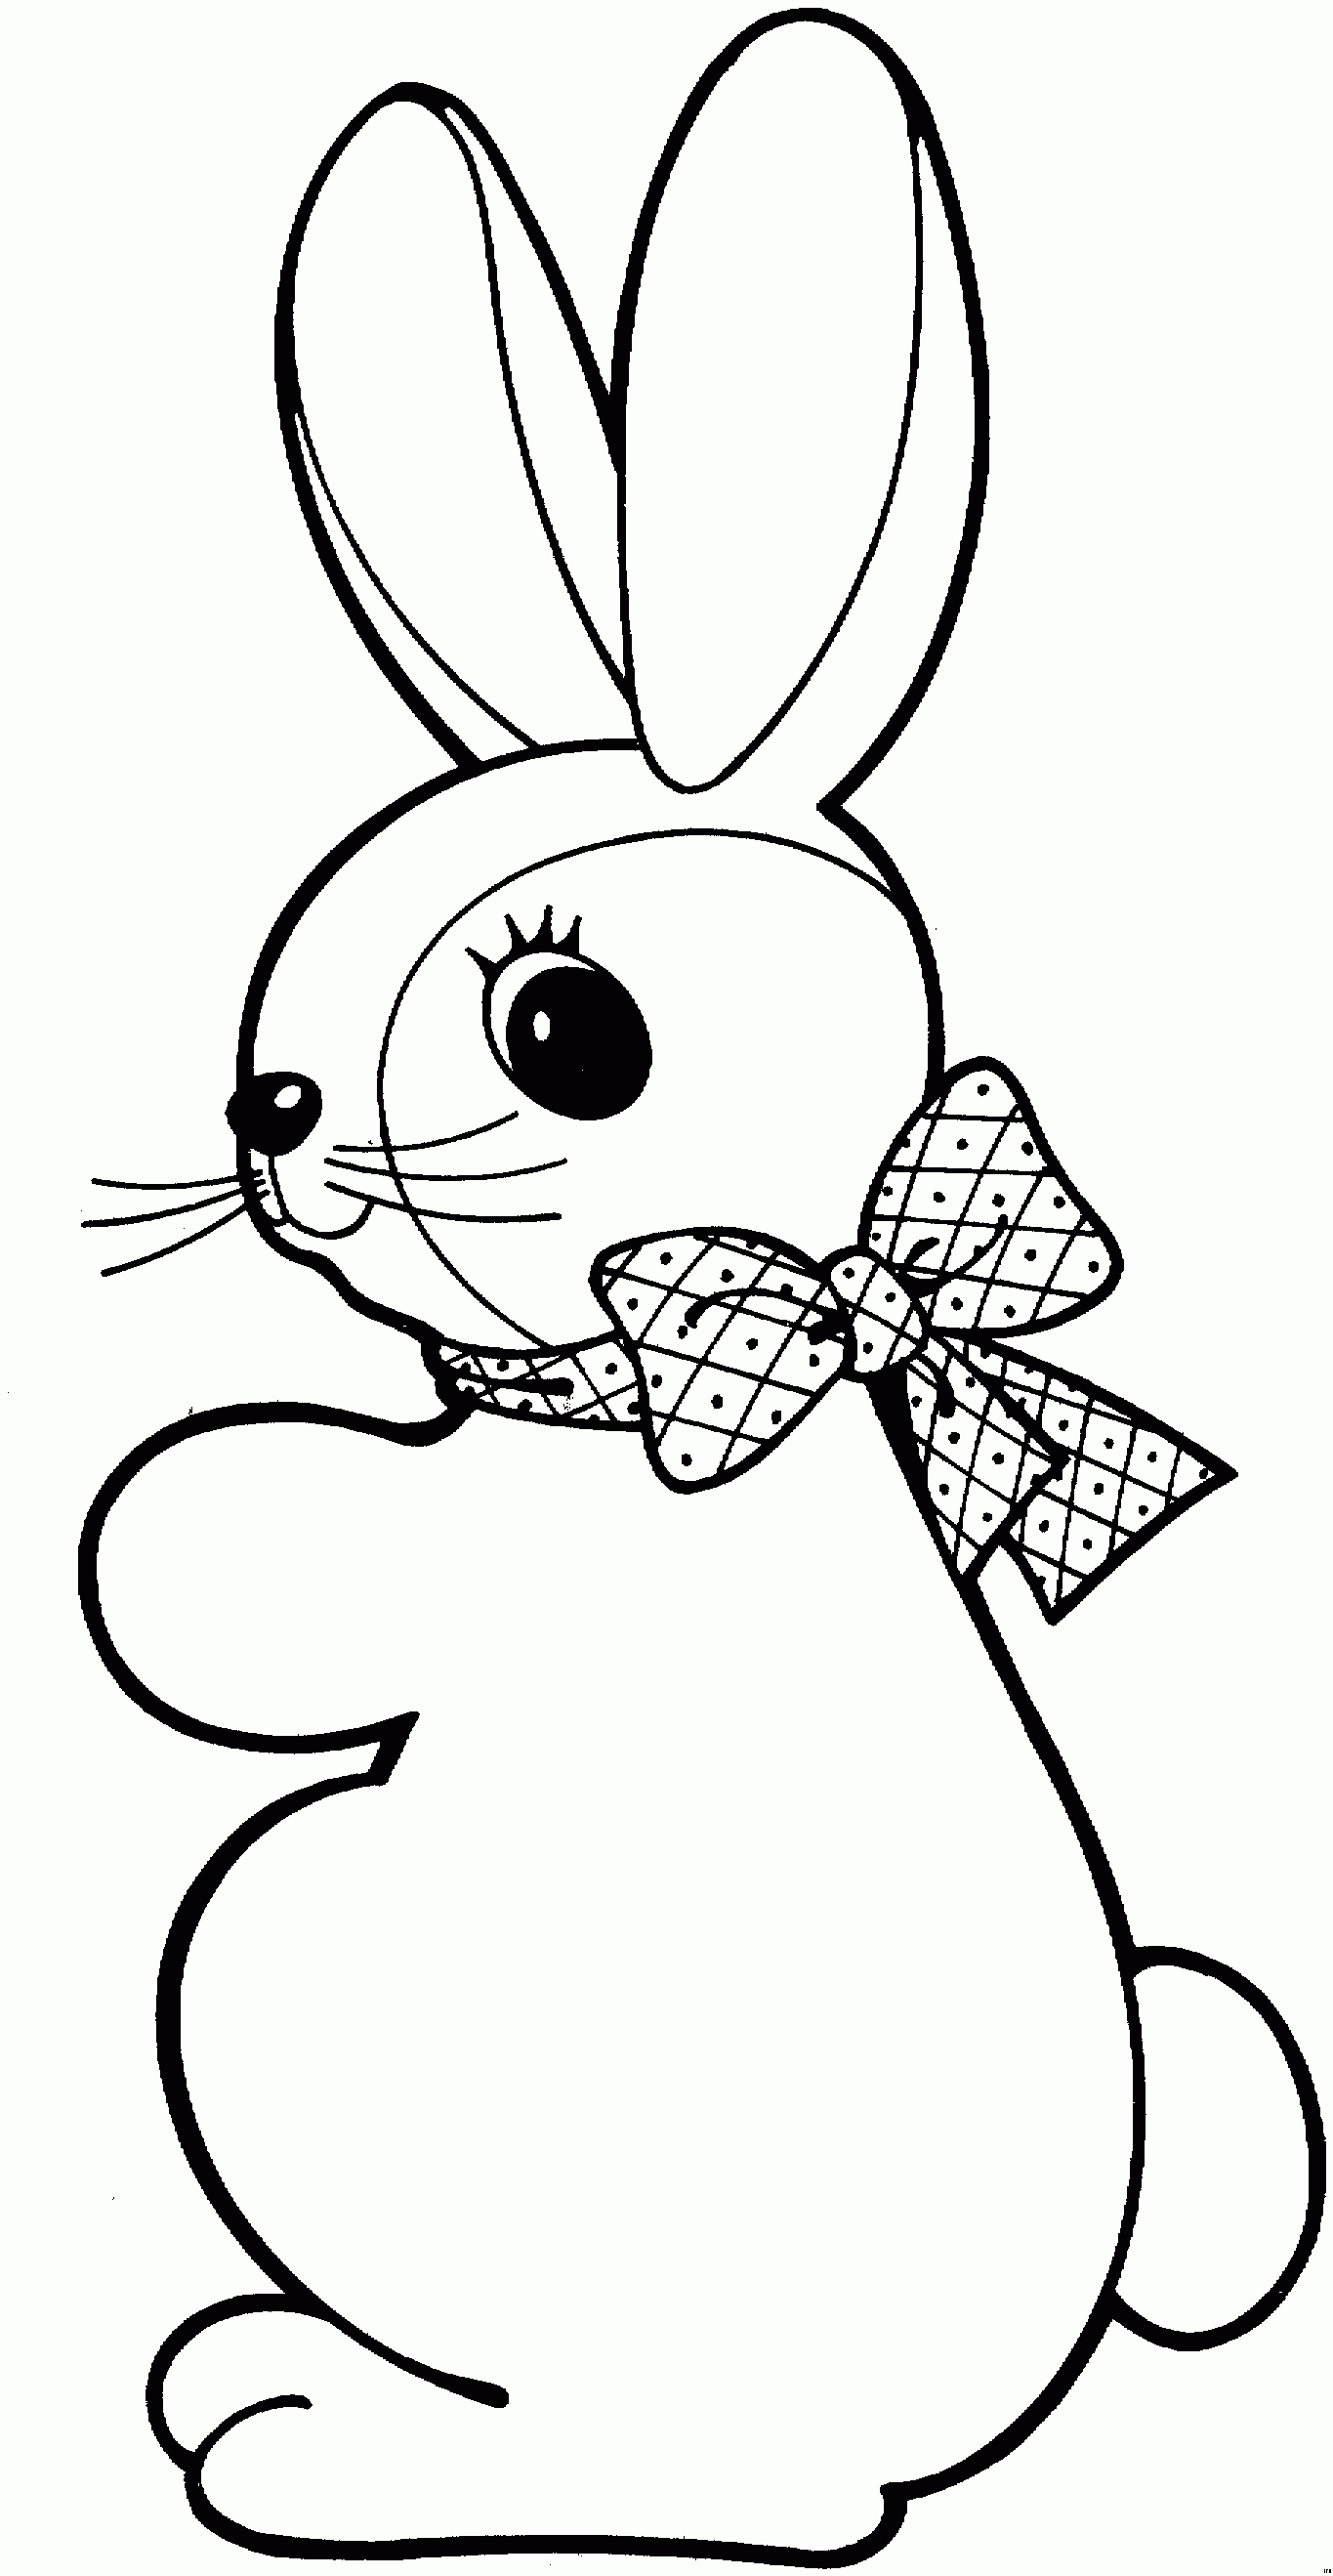 rabbit pictures for kids for colouring free printable rabbit coloring pages for kids rabbit for colouring for kids pictures